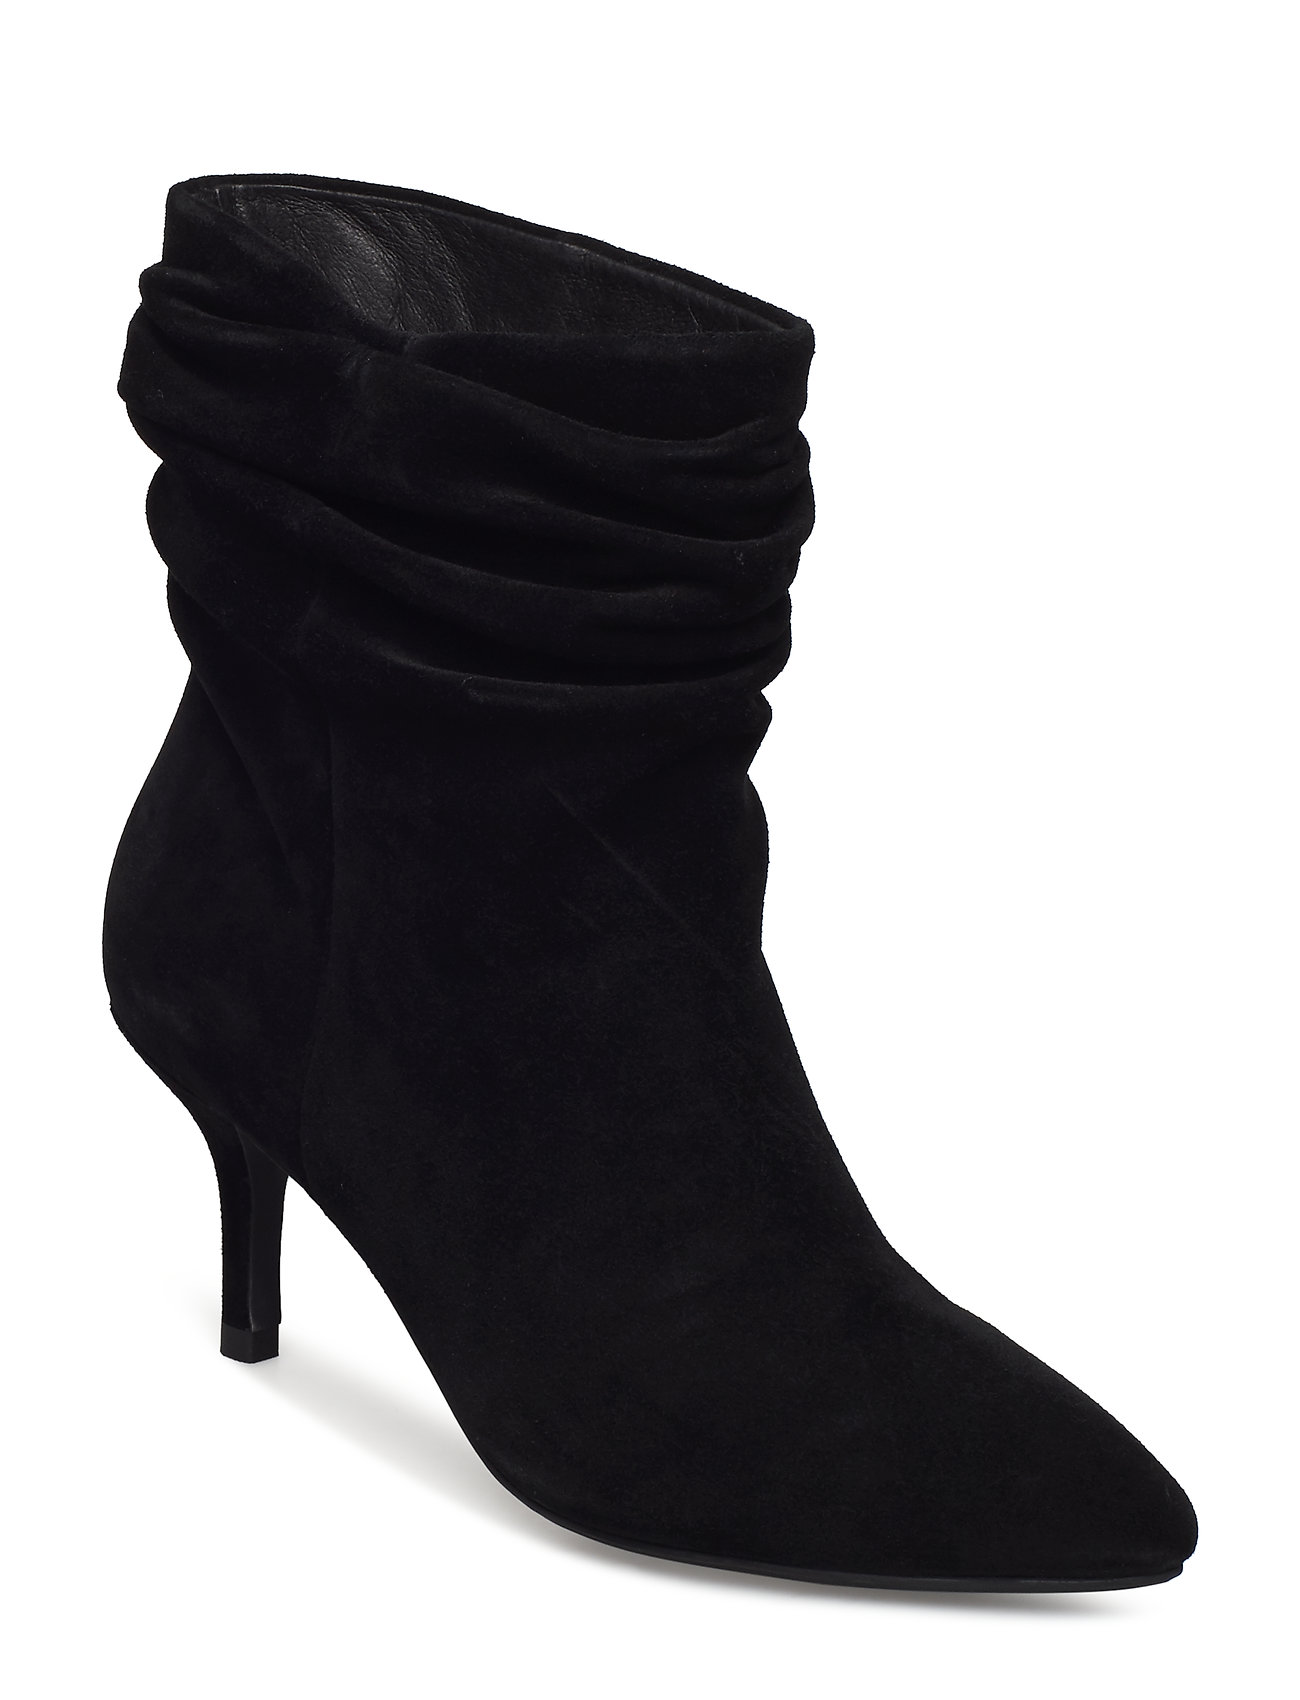 Image of Agnete Slouchy Shoes Boots Ankle Boots Ankle Boot - Heel Sort Shoe The Bear (3406190551)